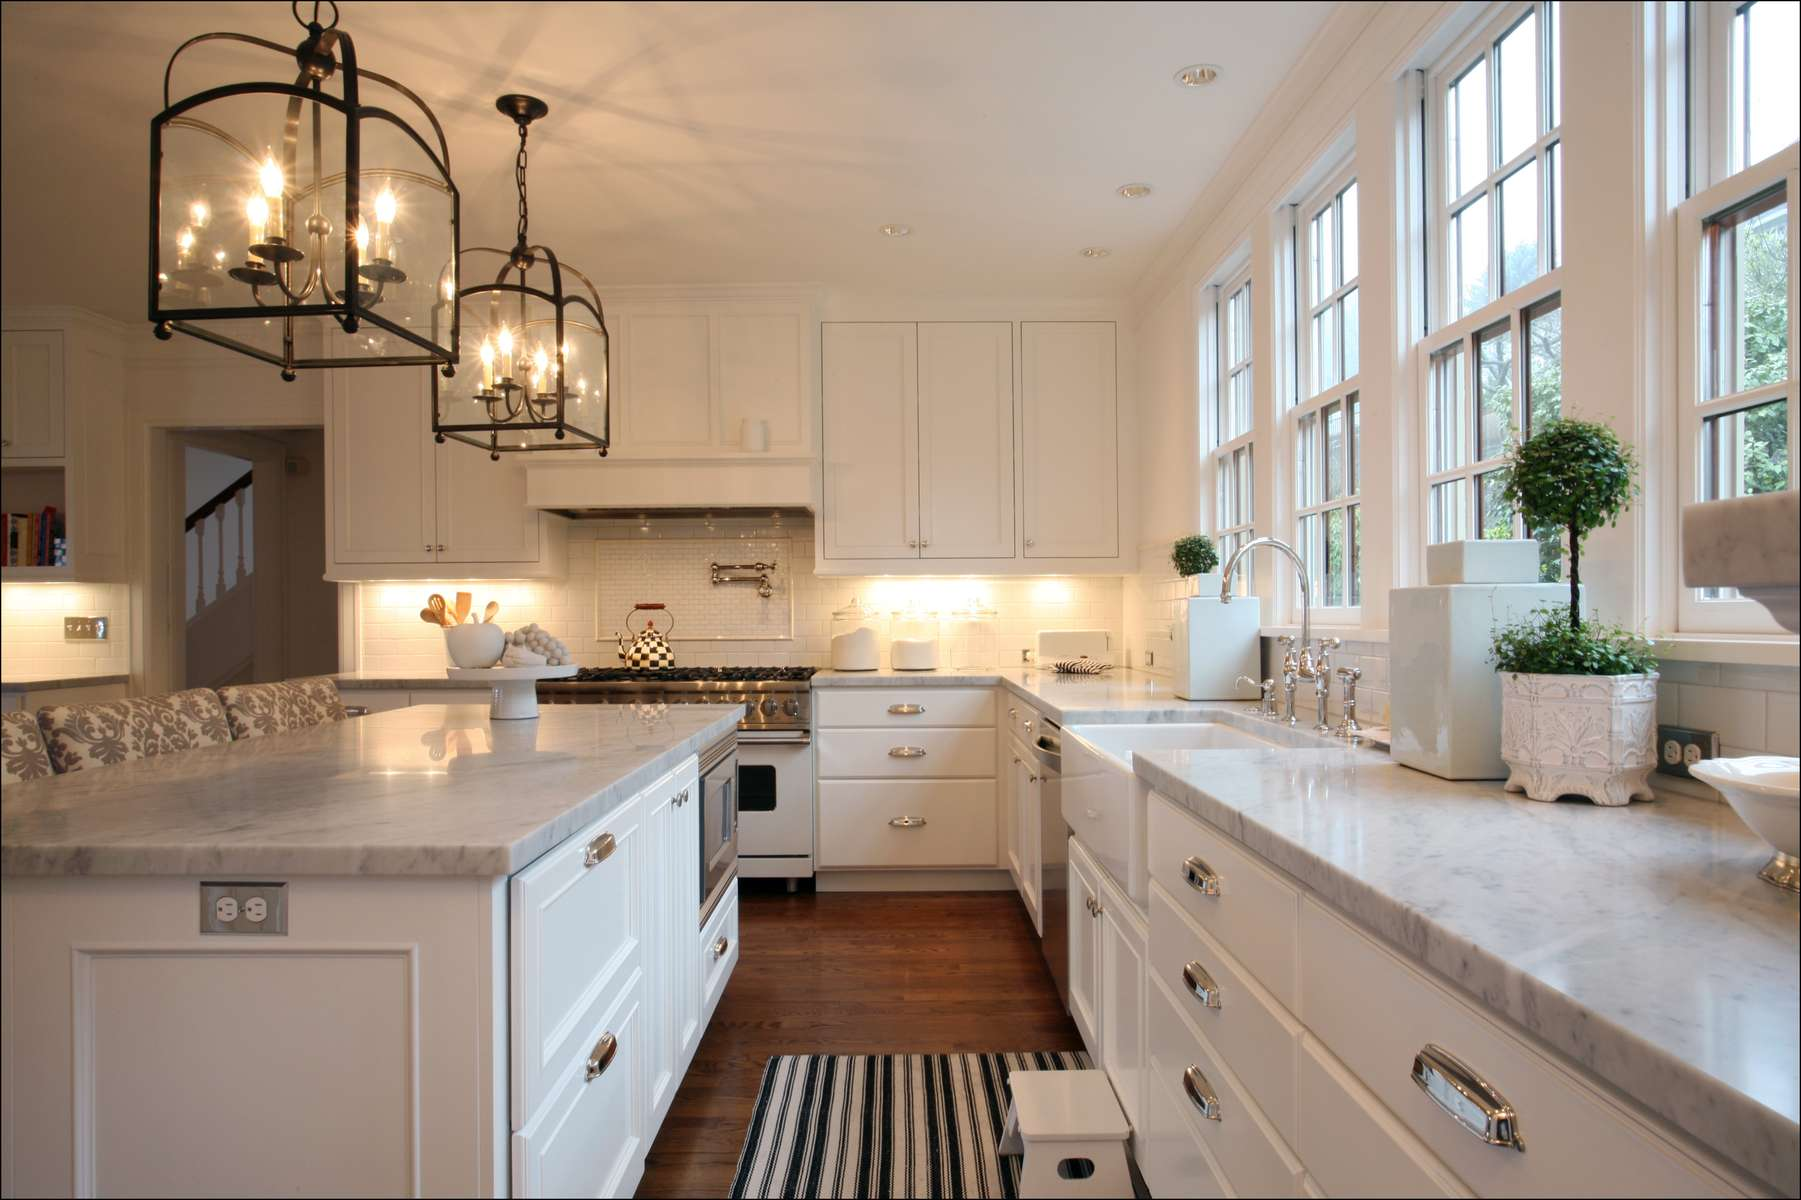 jandavid s kitchen 1 colonial kitchen design IMAGE GALLERIES Residential Gallery Whole House Colonial Revival jandavid s kitchen 1